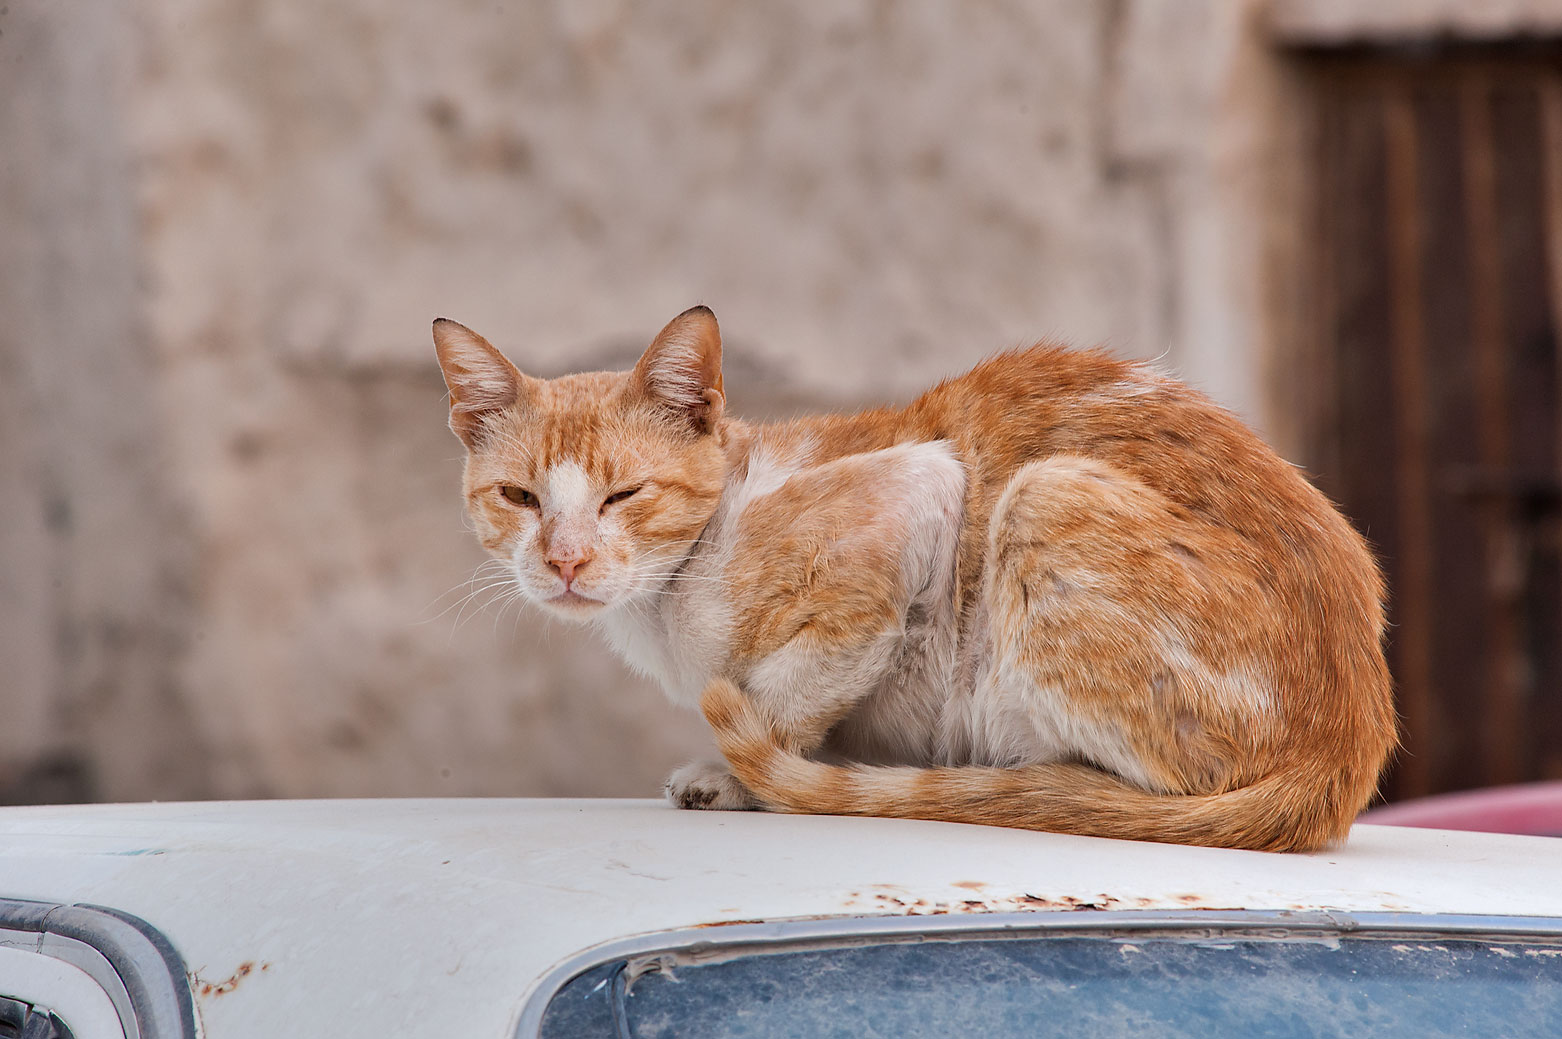 Brown cat sitting on a car on Umm Wishad St. in Musheirib area. Doha, Qatar